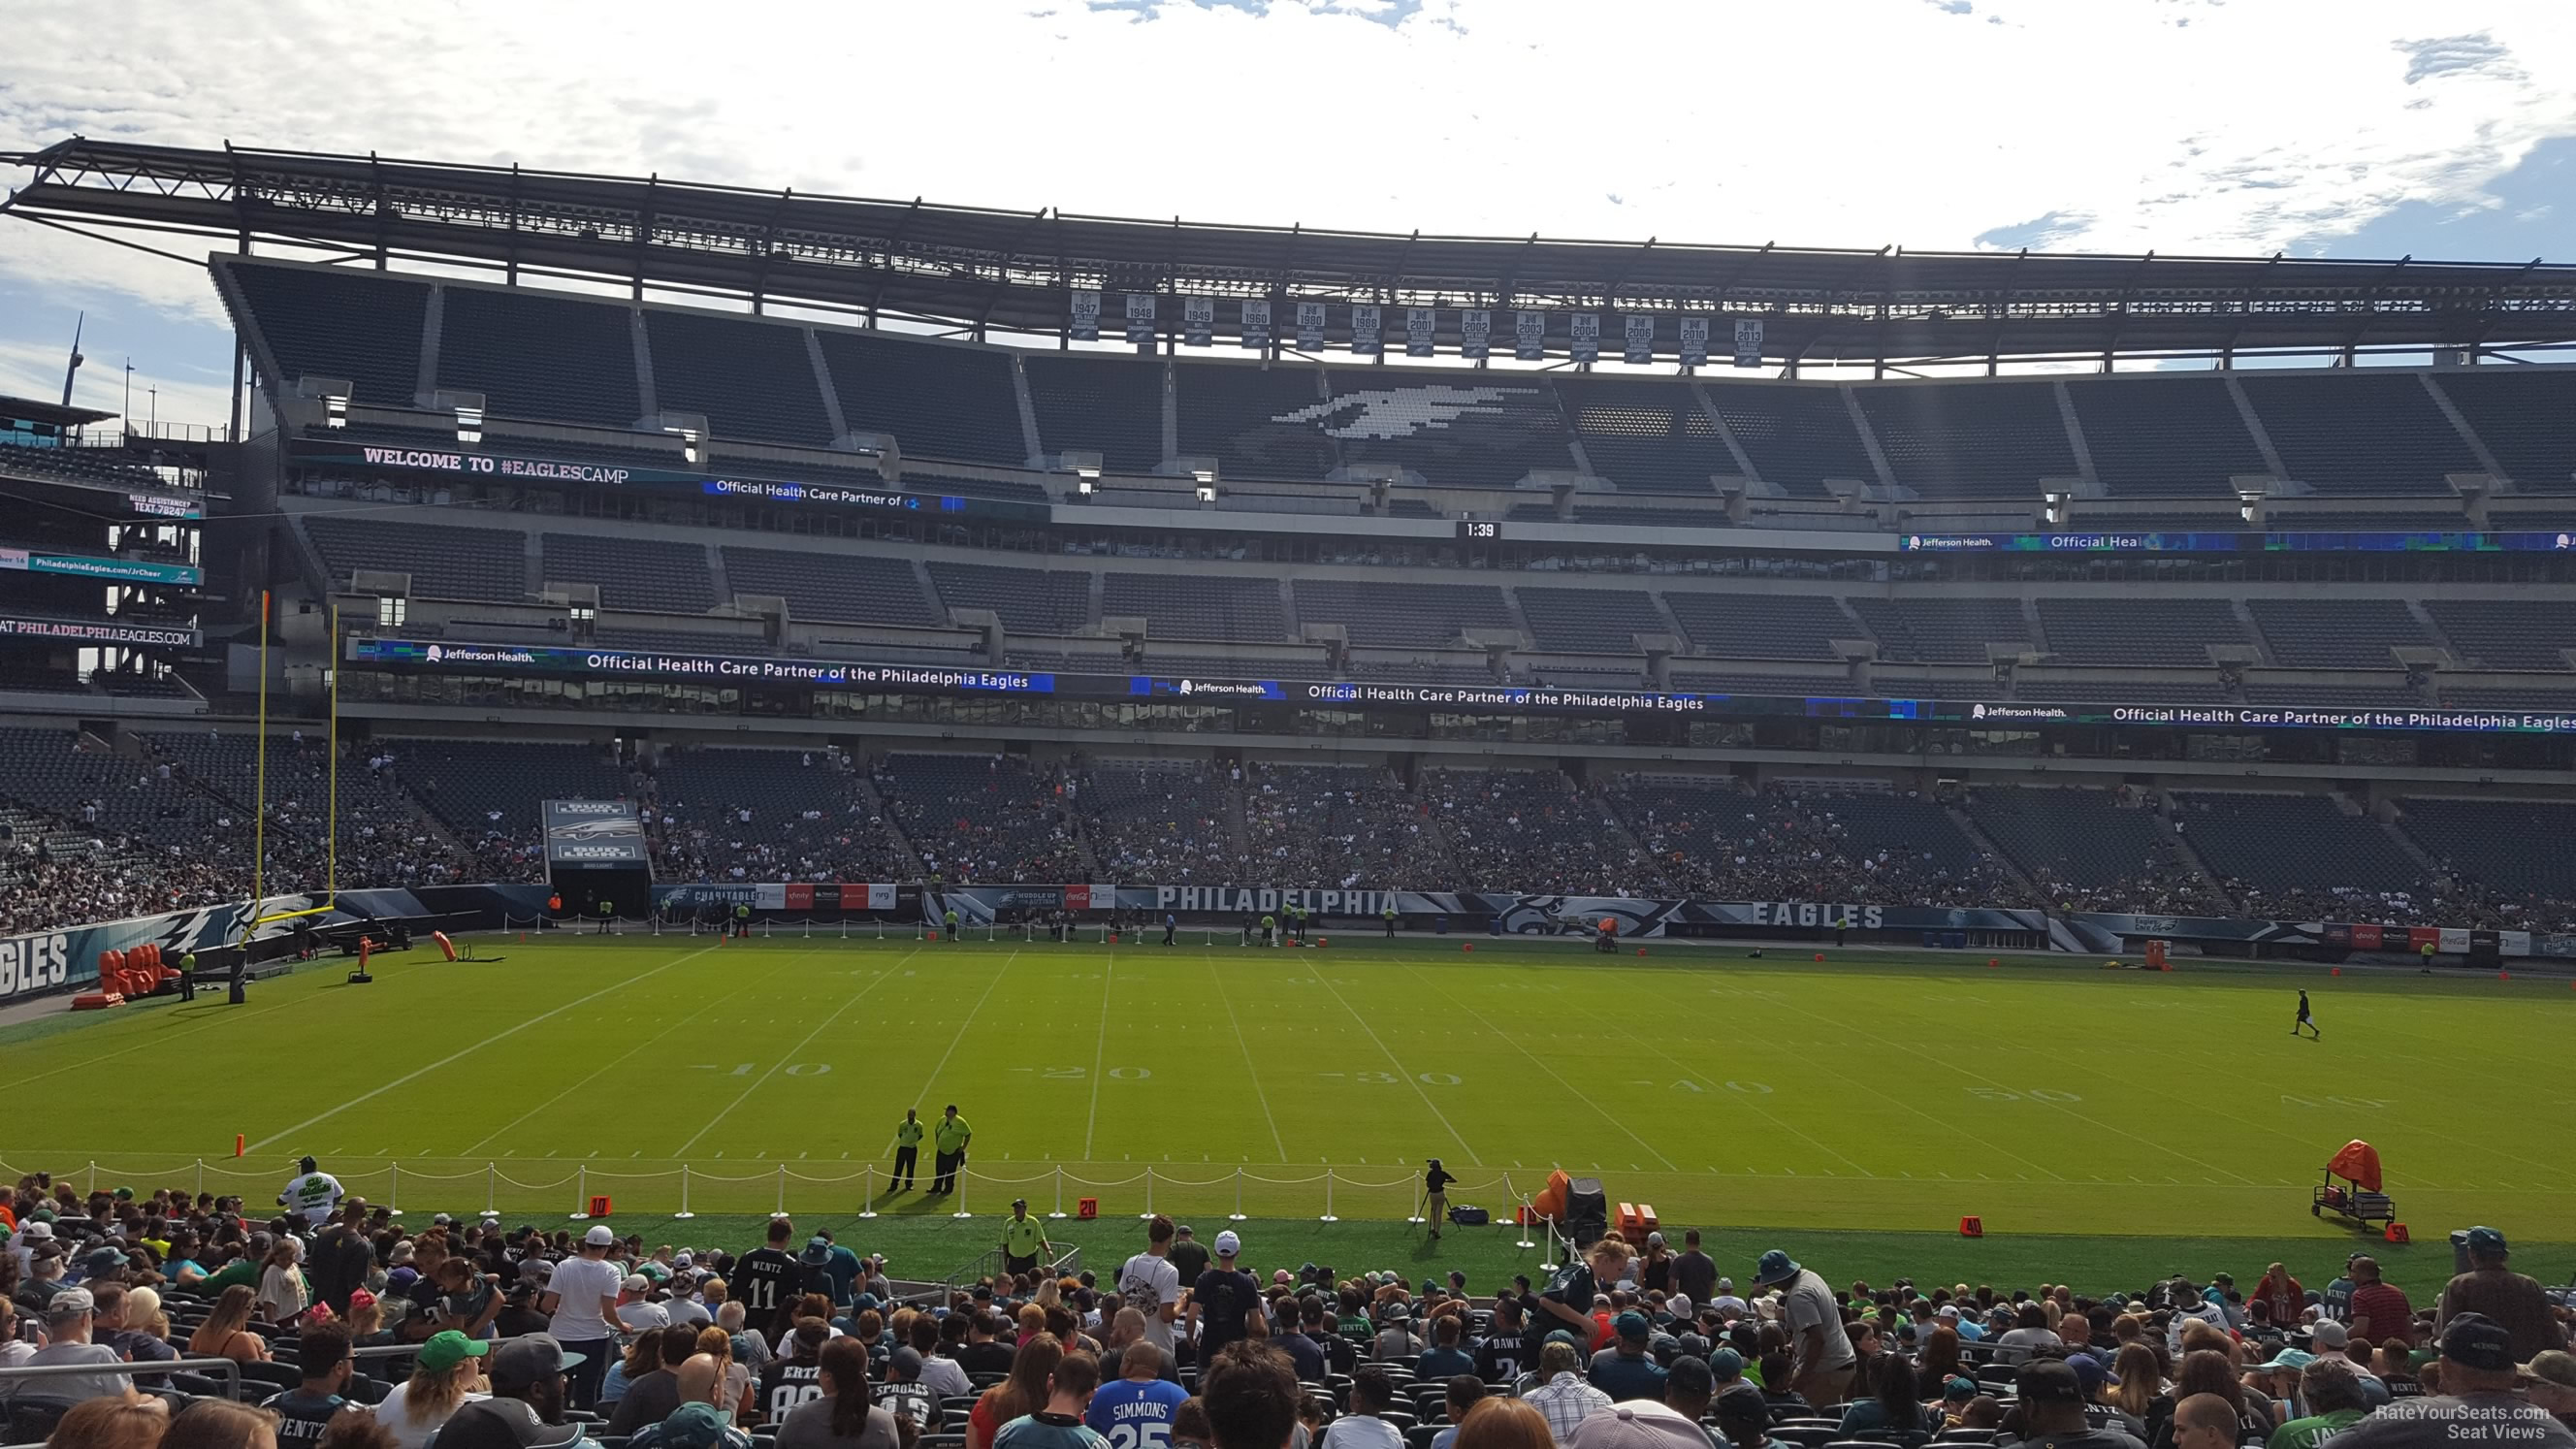 Section 137 seat view